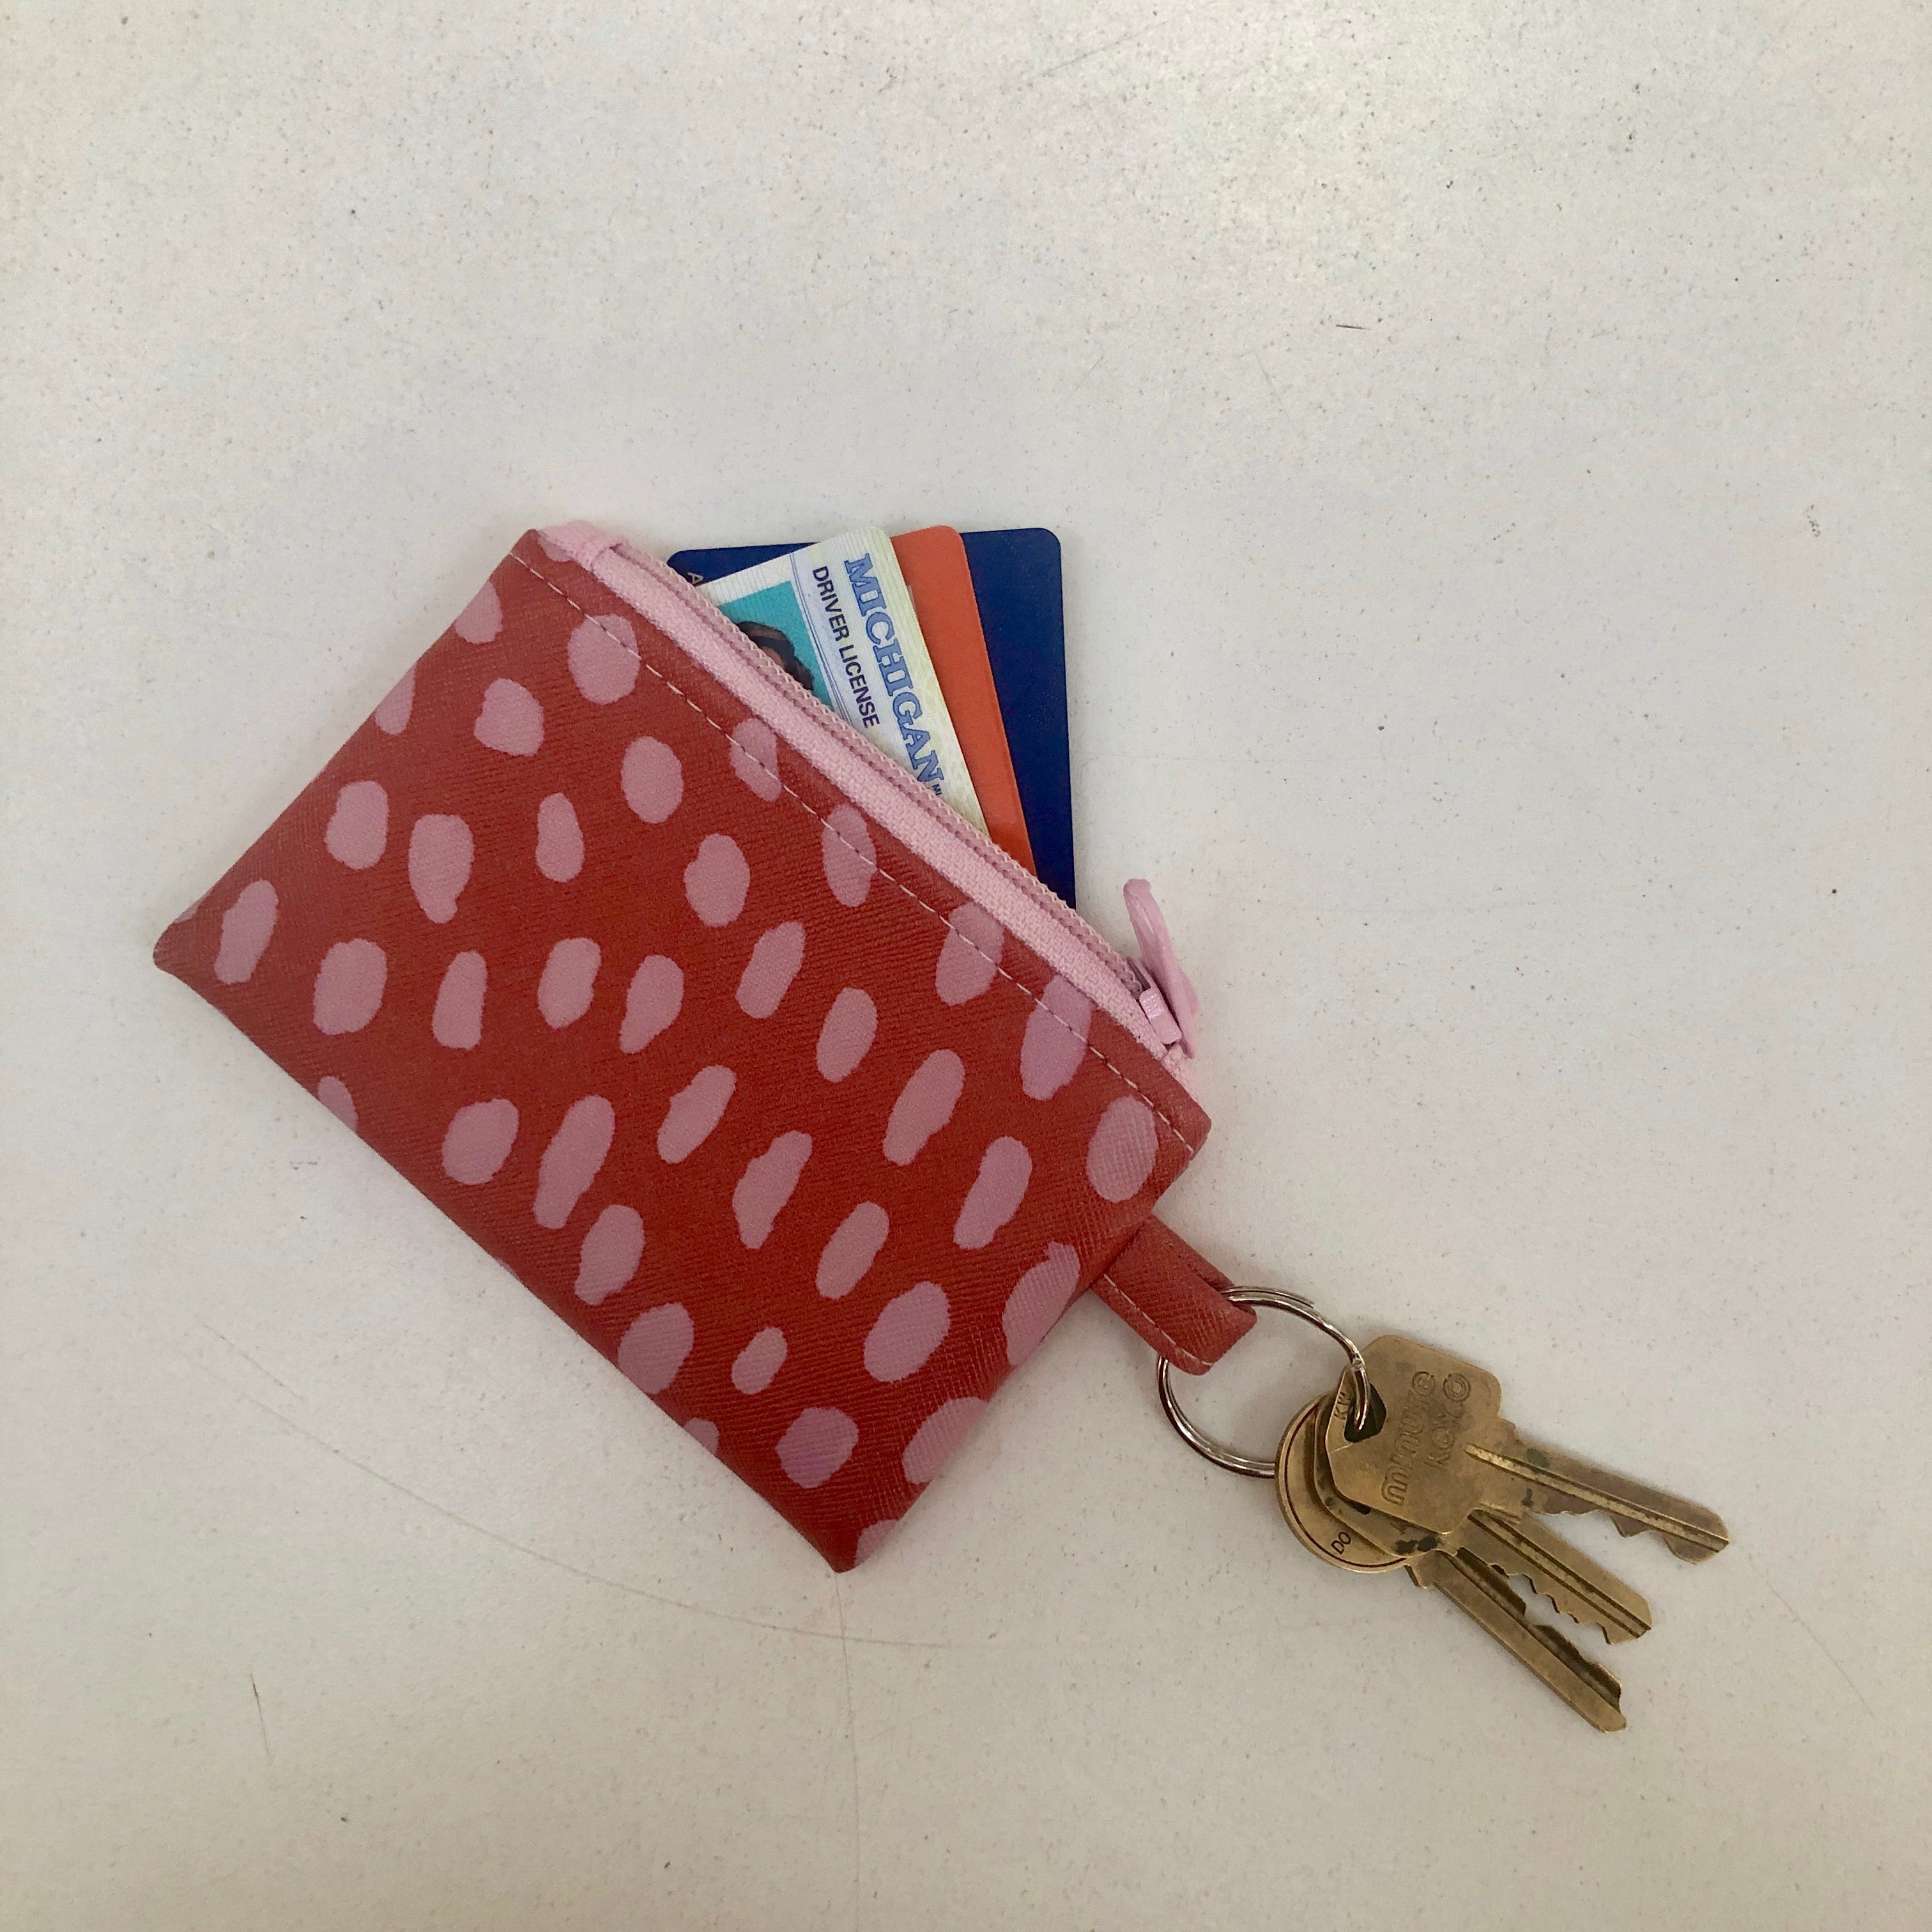 Key Ring Zip Pouch Wallet - Coral Pink, Talking Out of Turn, Handcrafted Home Goods and Gifts